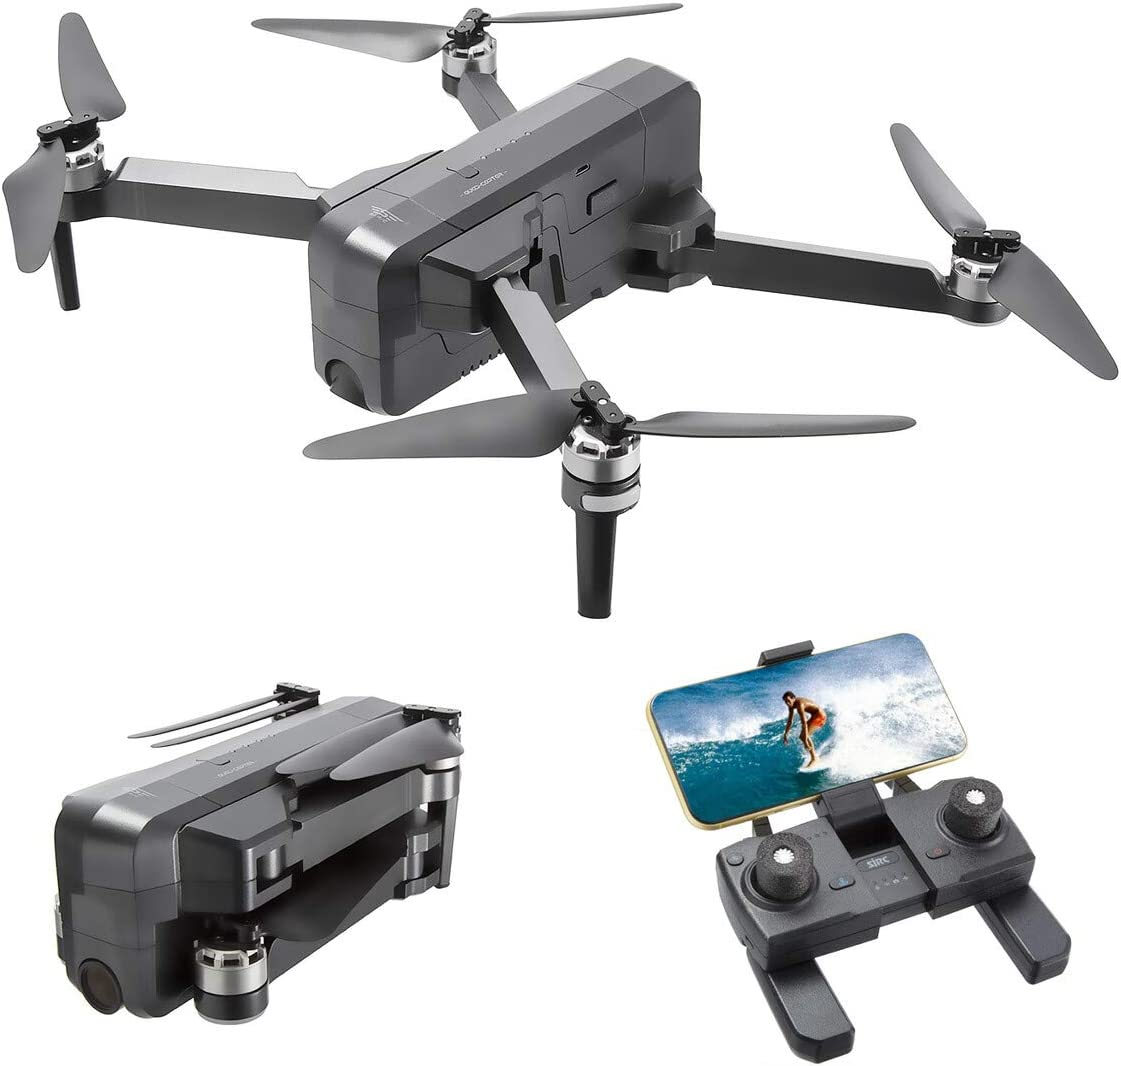 Powerextra F11 Pro Foldable GPS Drone with Camera for Adults, 4K 1080P HD Live Video Camera Drone for Beginners, Quadcopter with Brushless Motor, Auto Return Home, Follow Me, 60 Minutes Flight Time